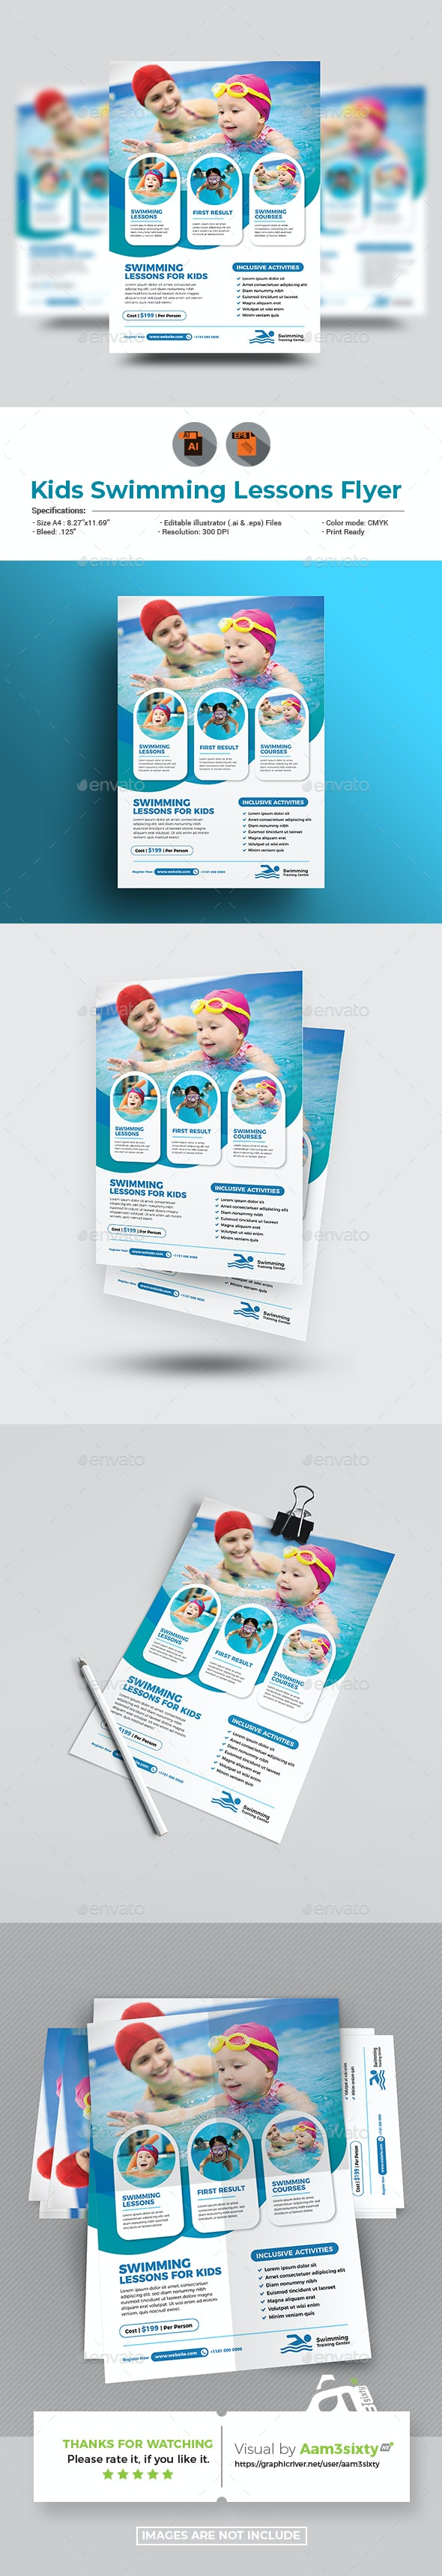 Kids Swimming Training Flyer Template - Sports Events